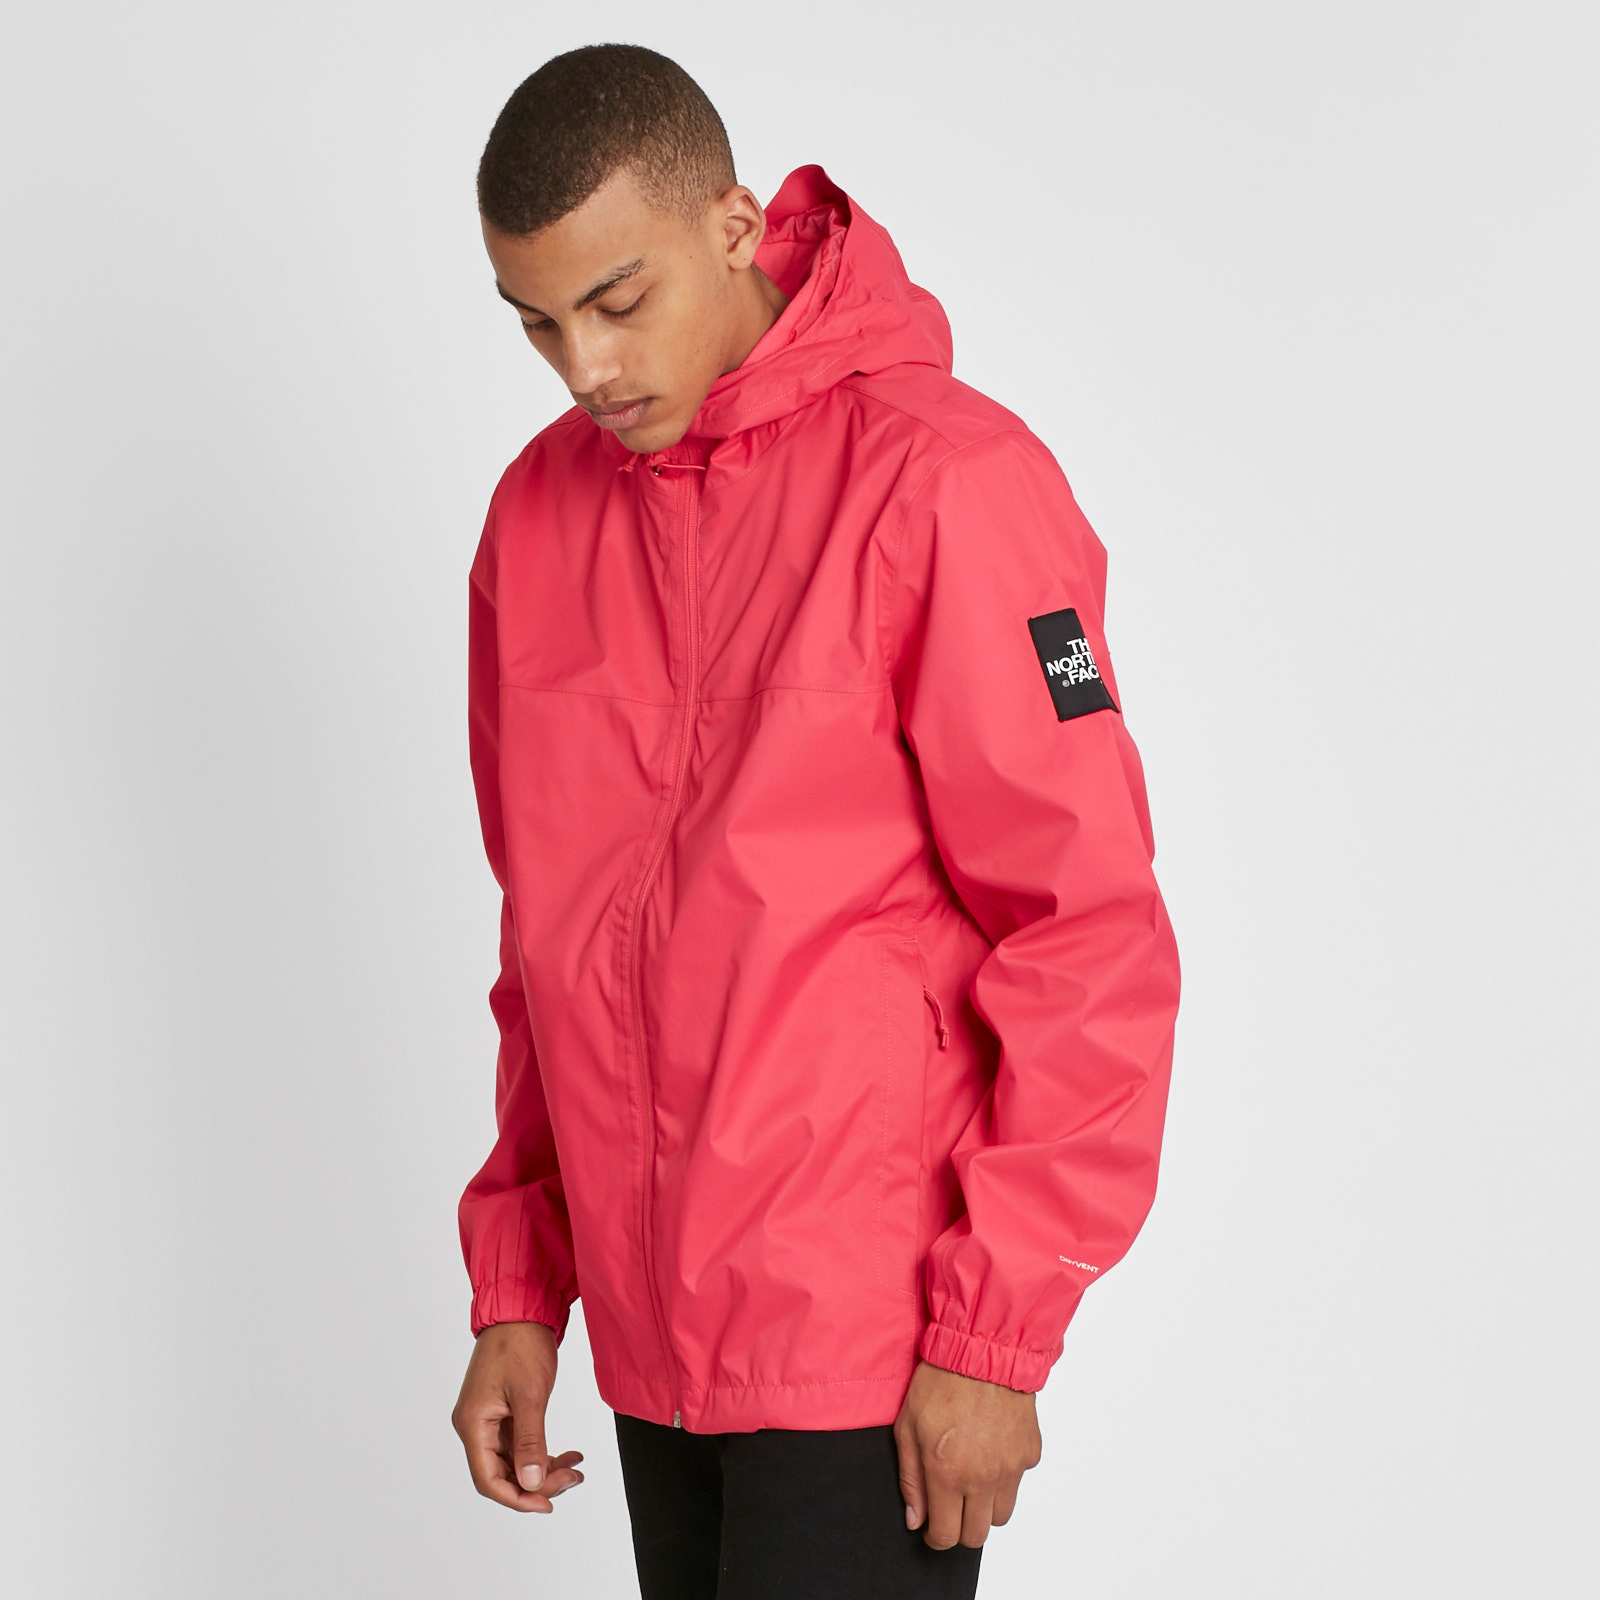 e45a449fac93 The North Face Mountain Q Jacket - T0cr3qzcx - Sneakersnstuff ...